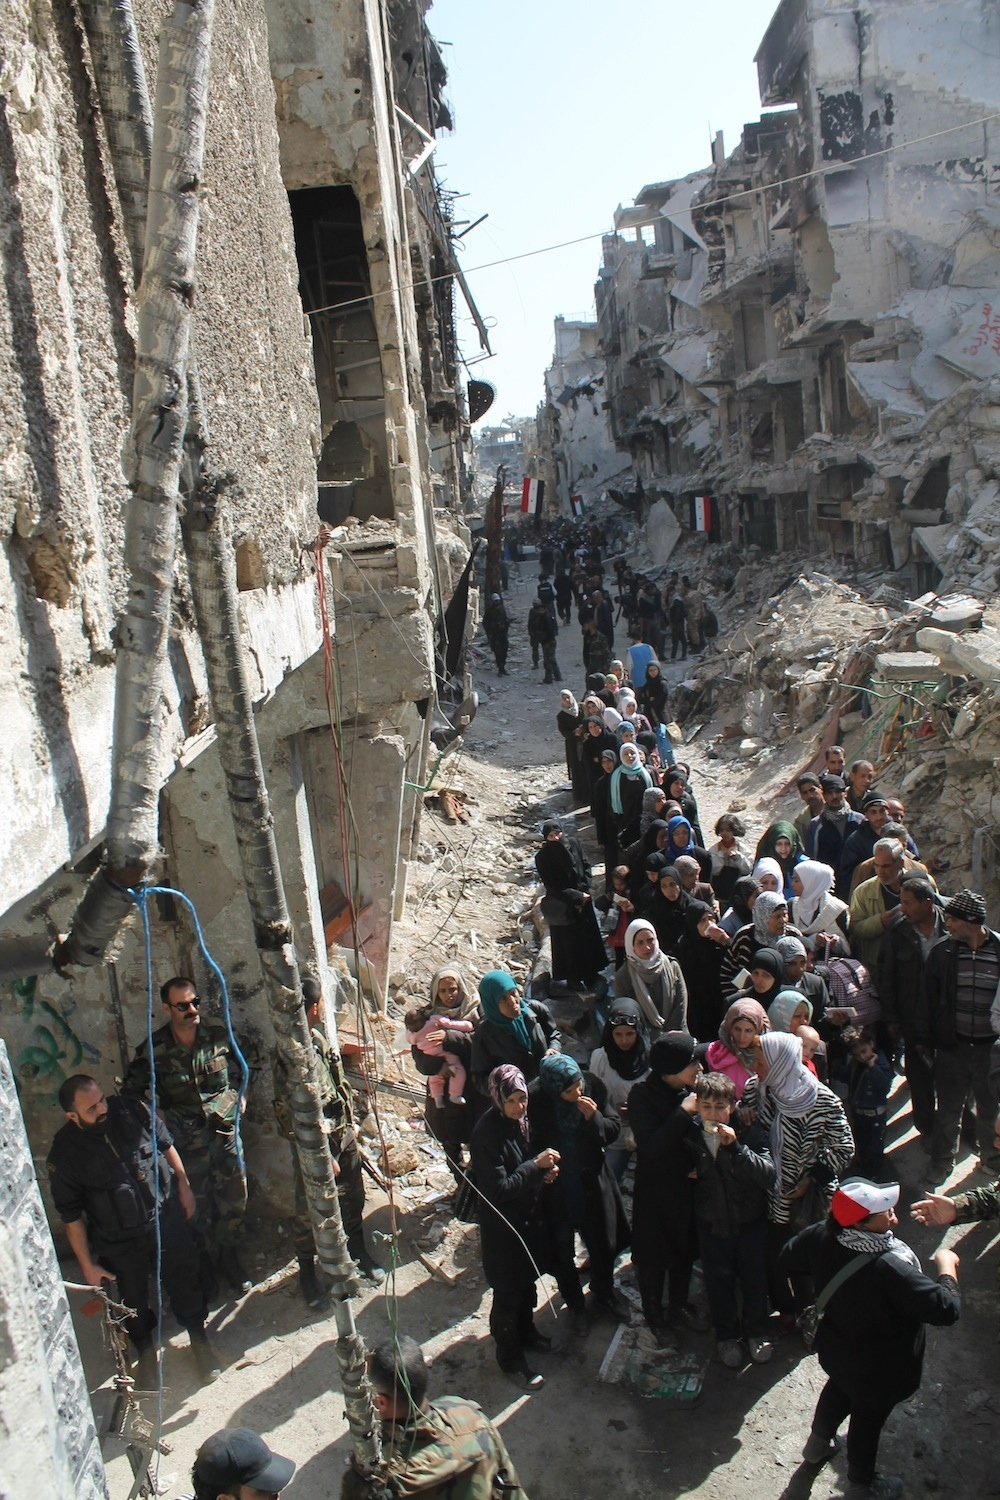 These Photos Of Yarmouk Show Some Of The Devastation Of The Syrian War